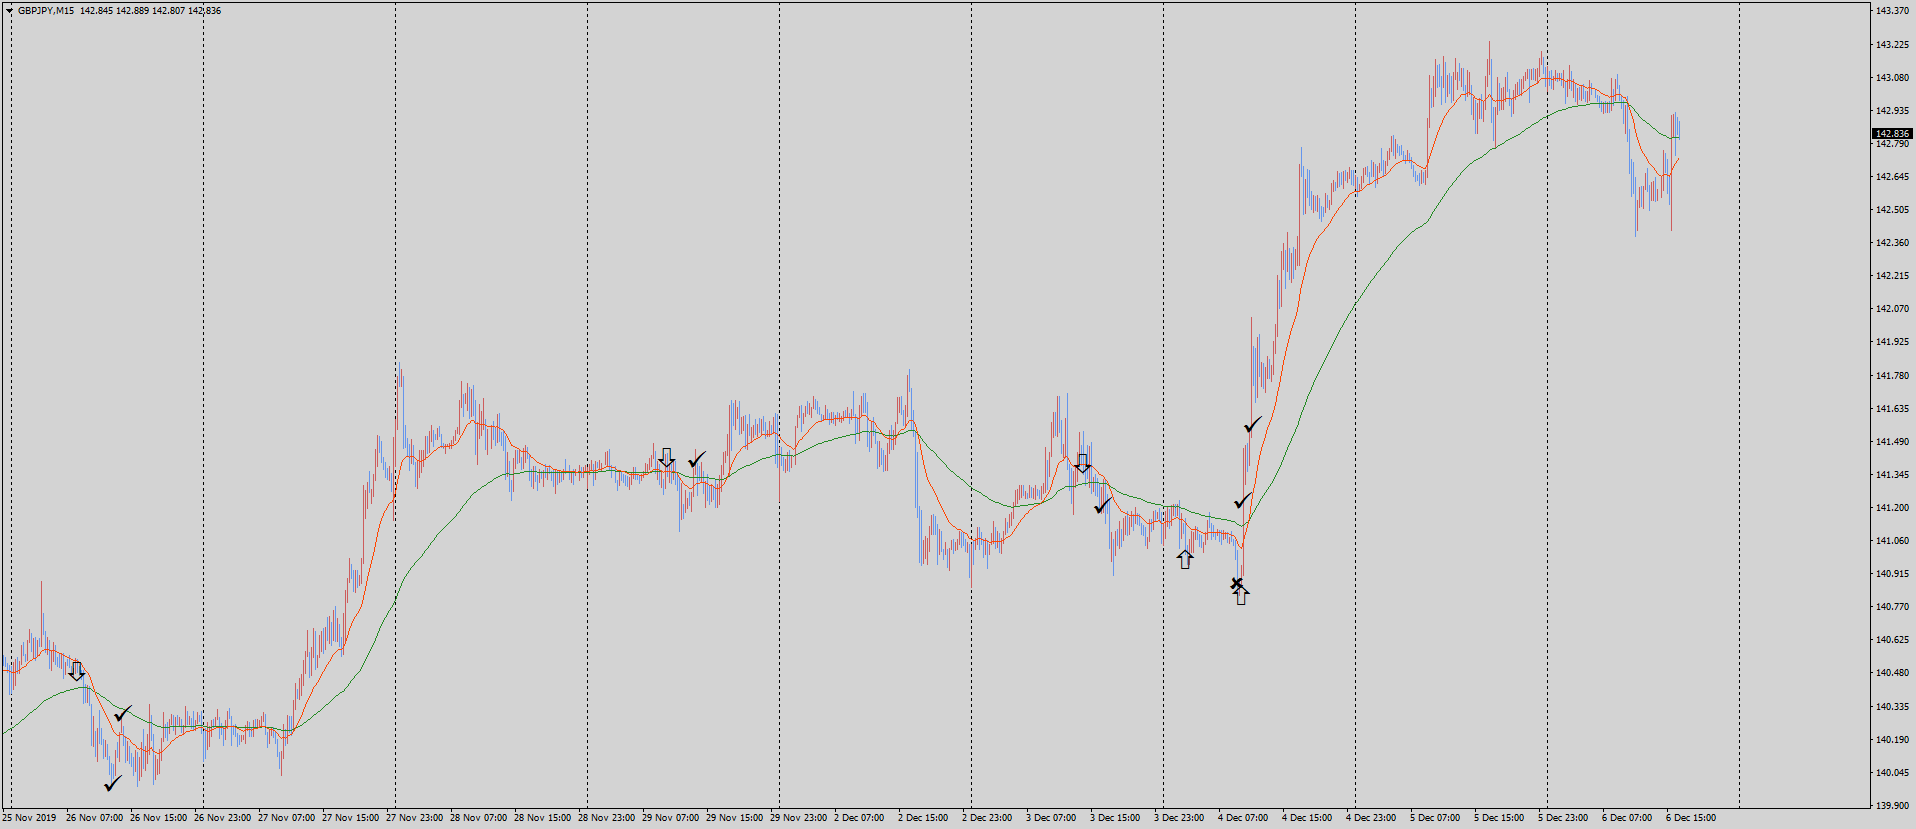 19-12-06-gbpjpy-m15-tradexfin-limited.png